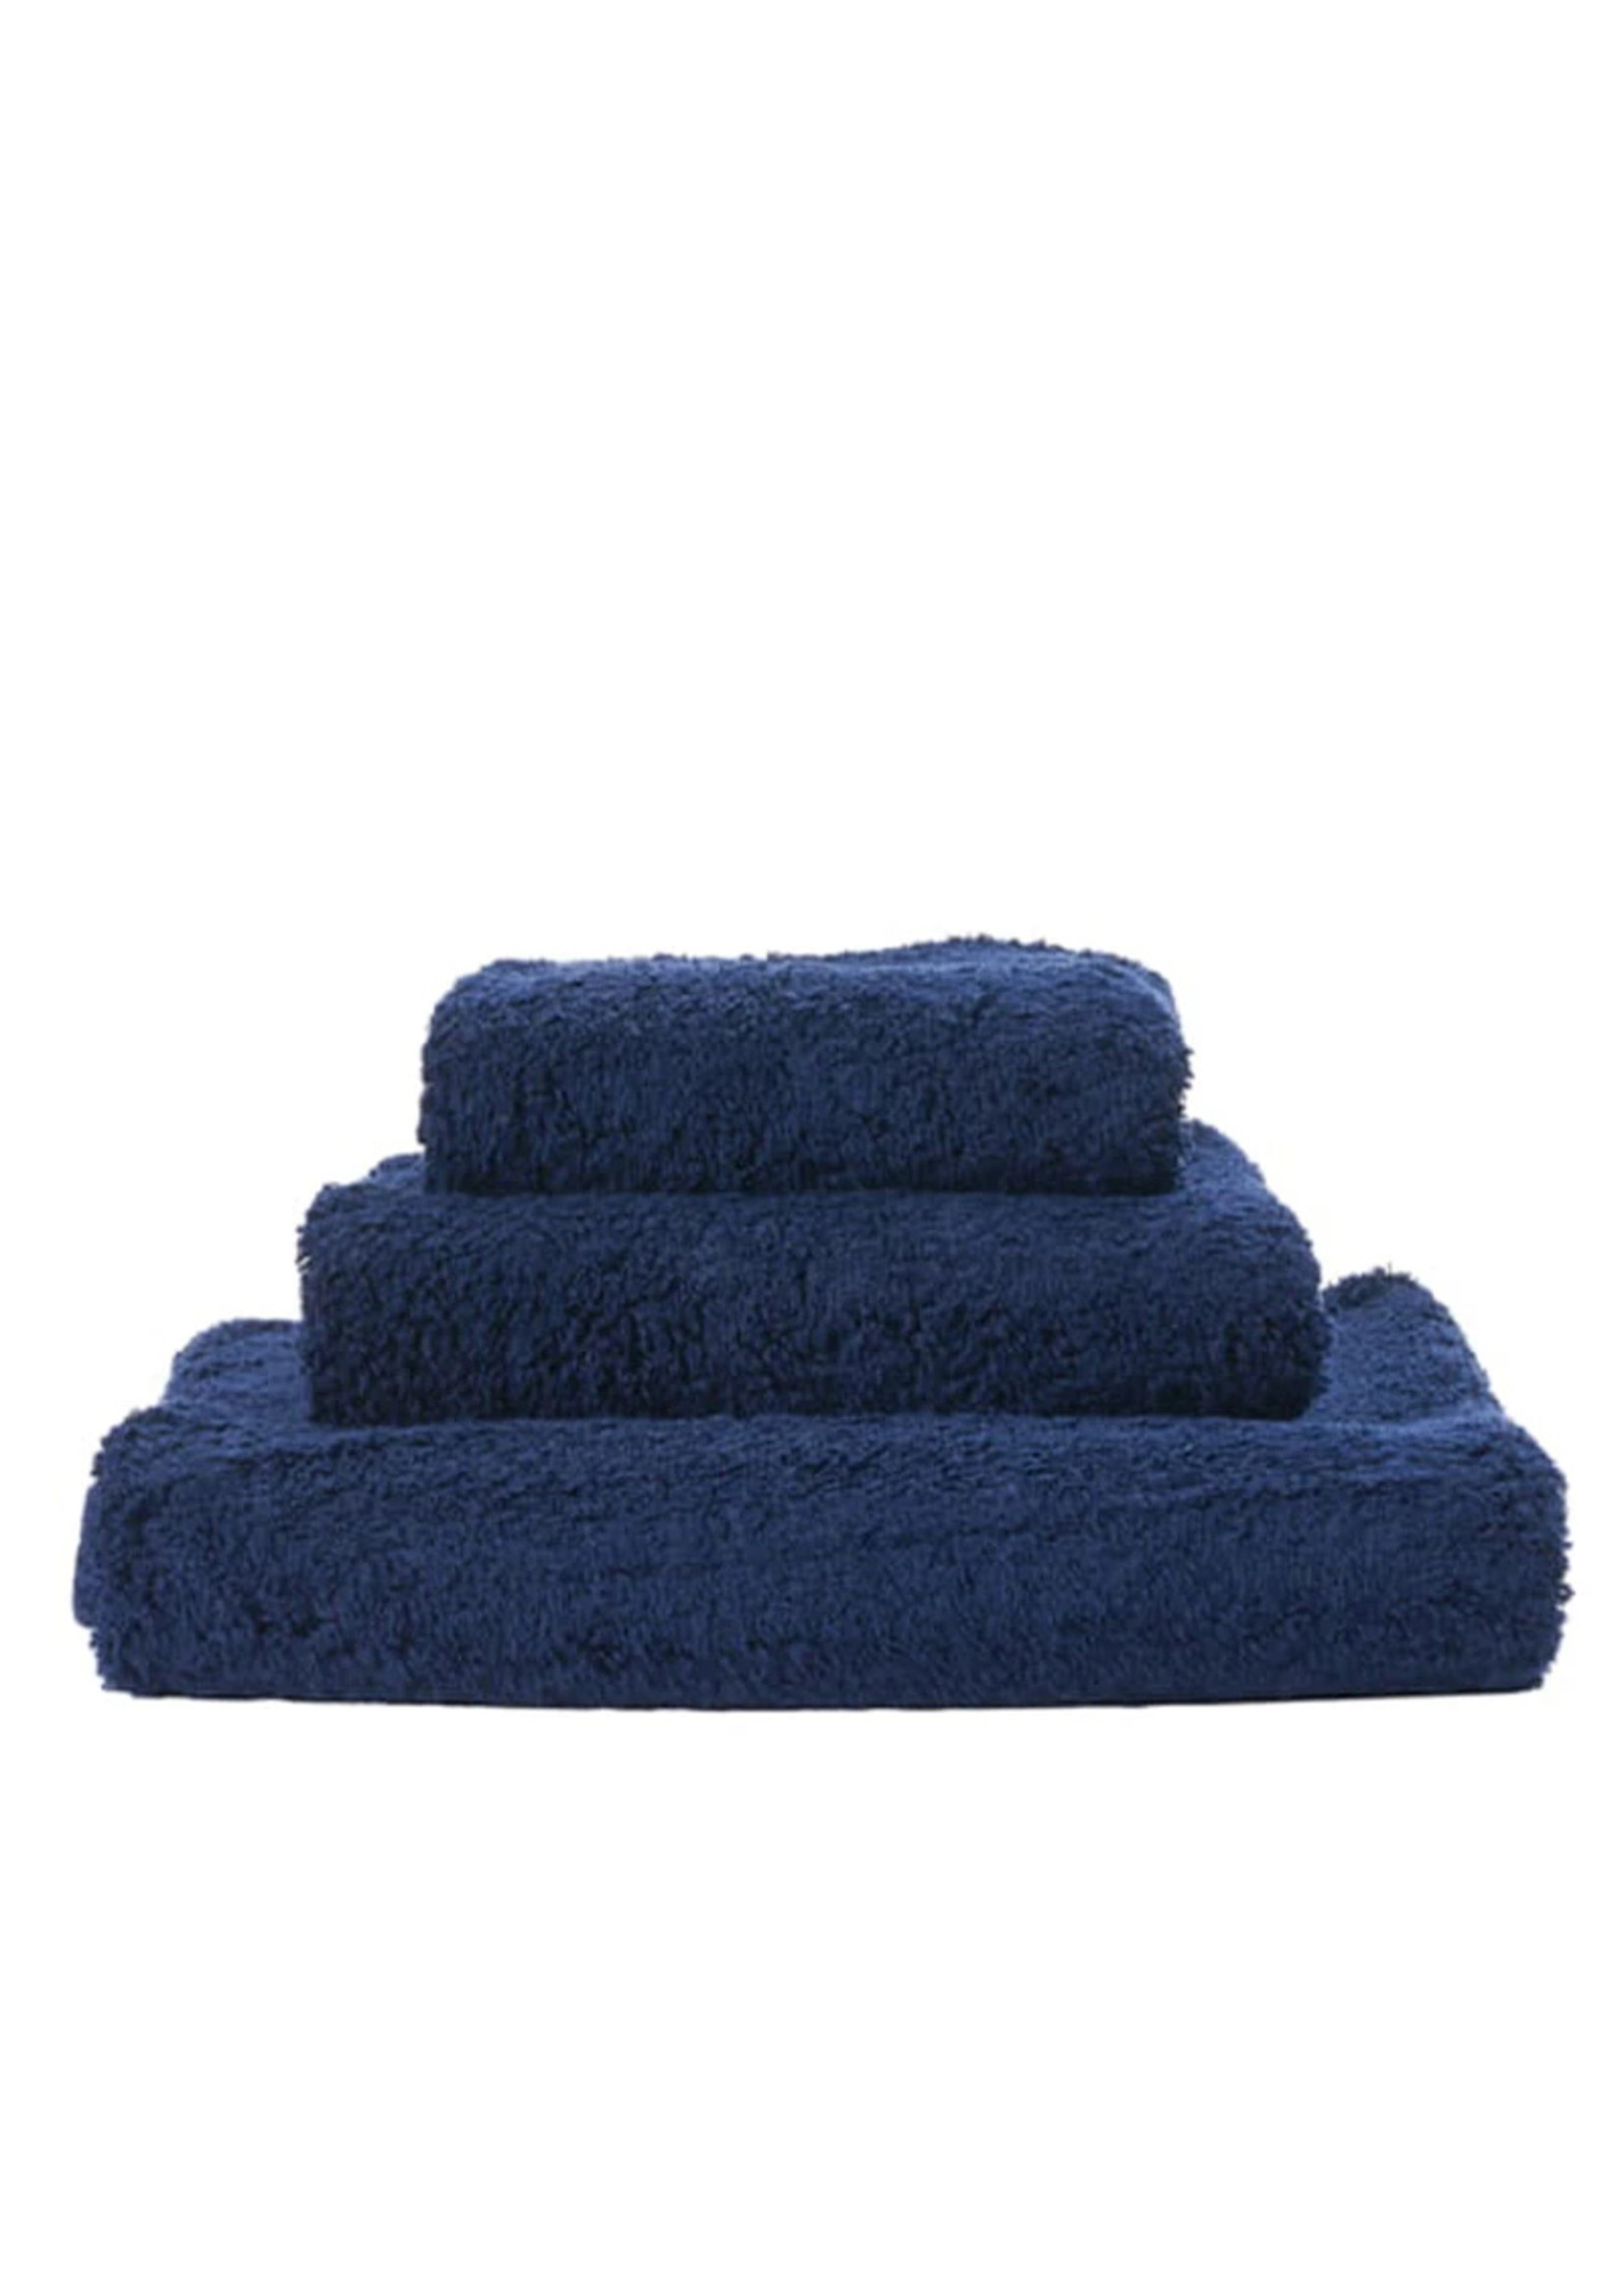 Abyss & Habidecor Super Pile Blue Night Towels